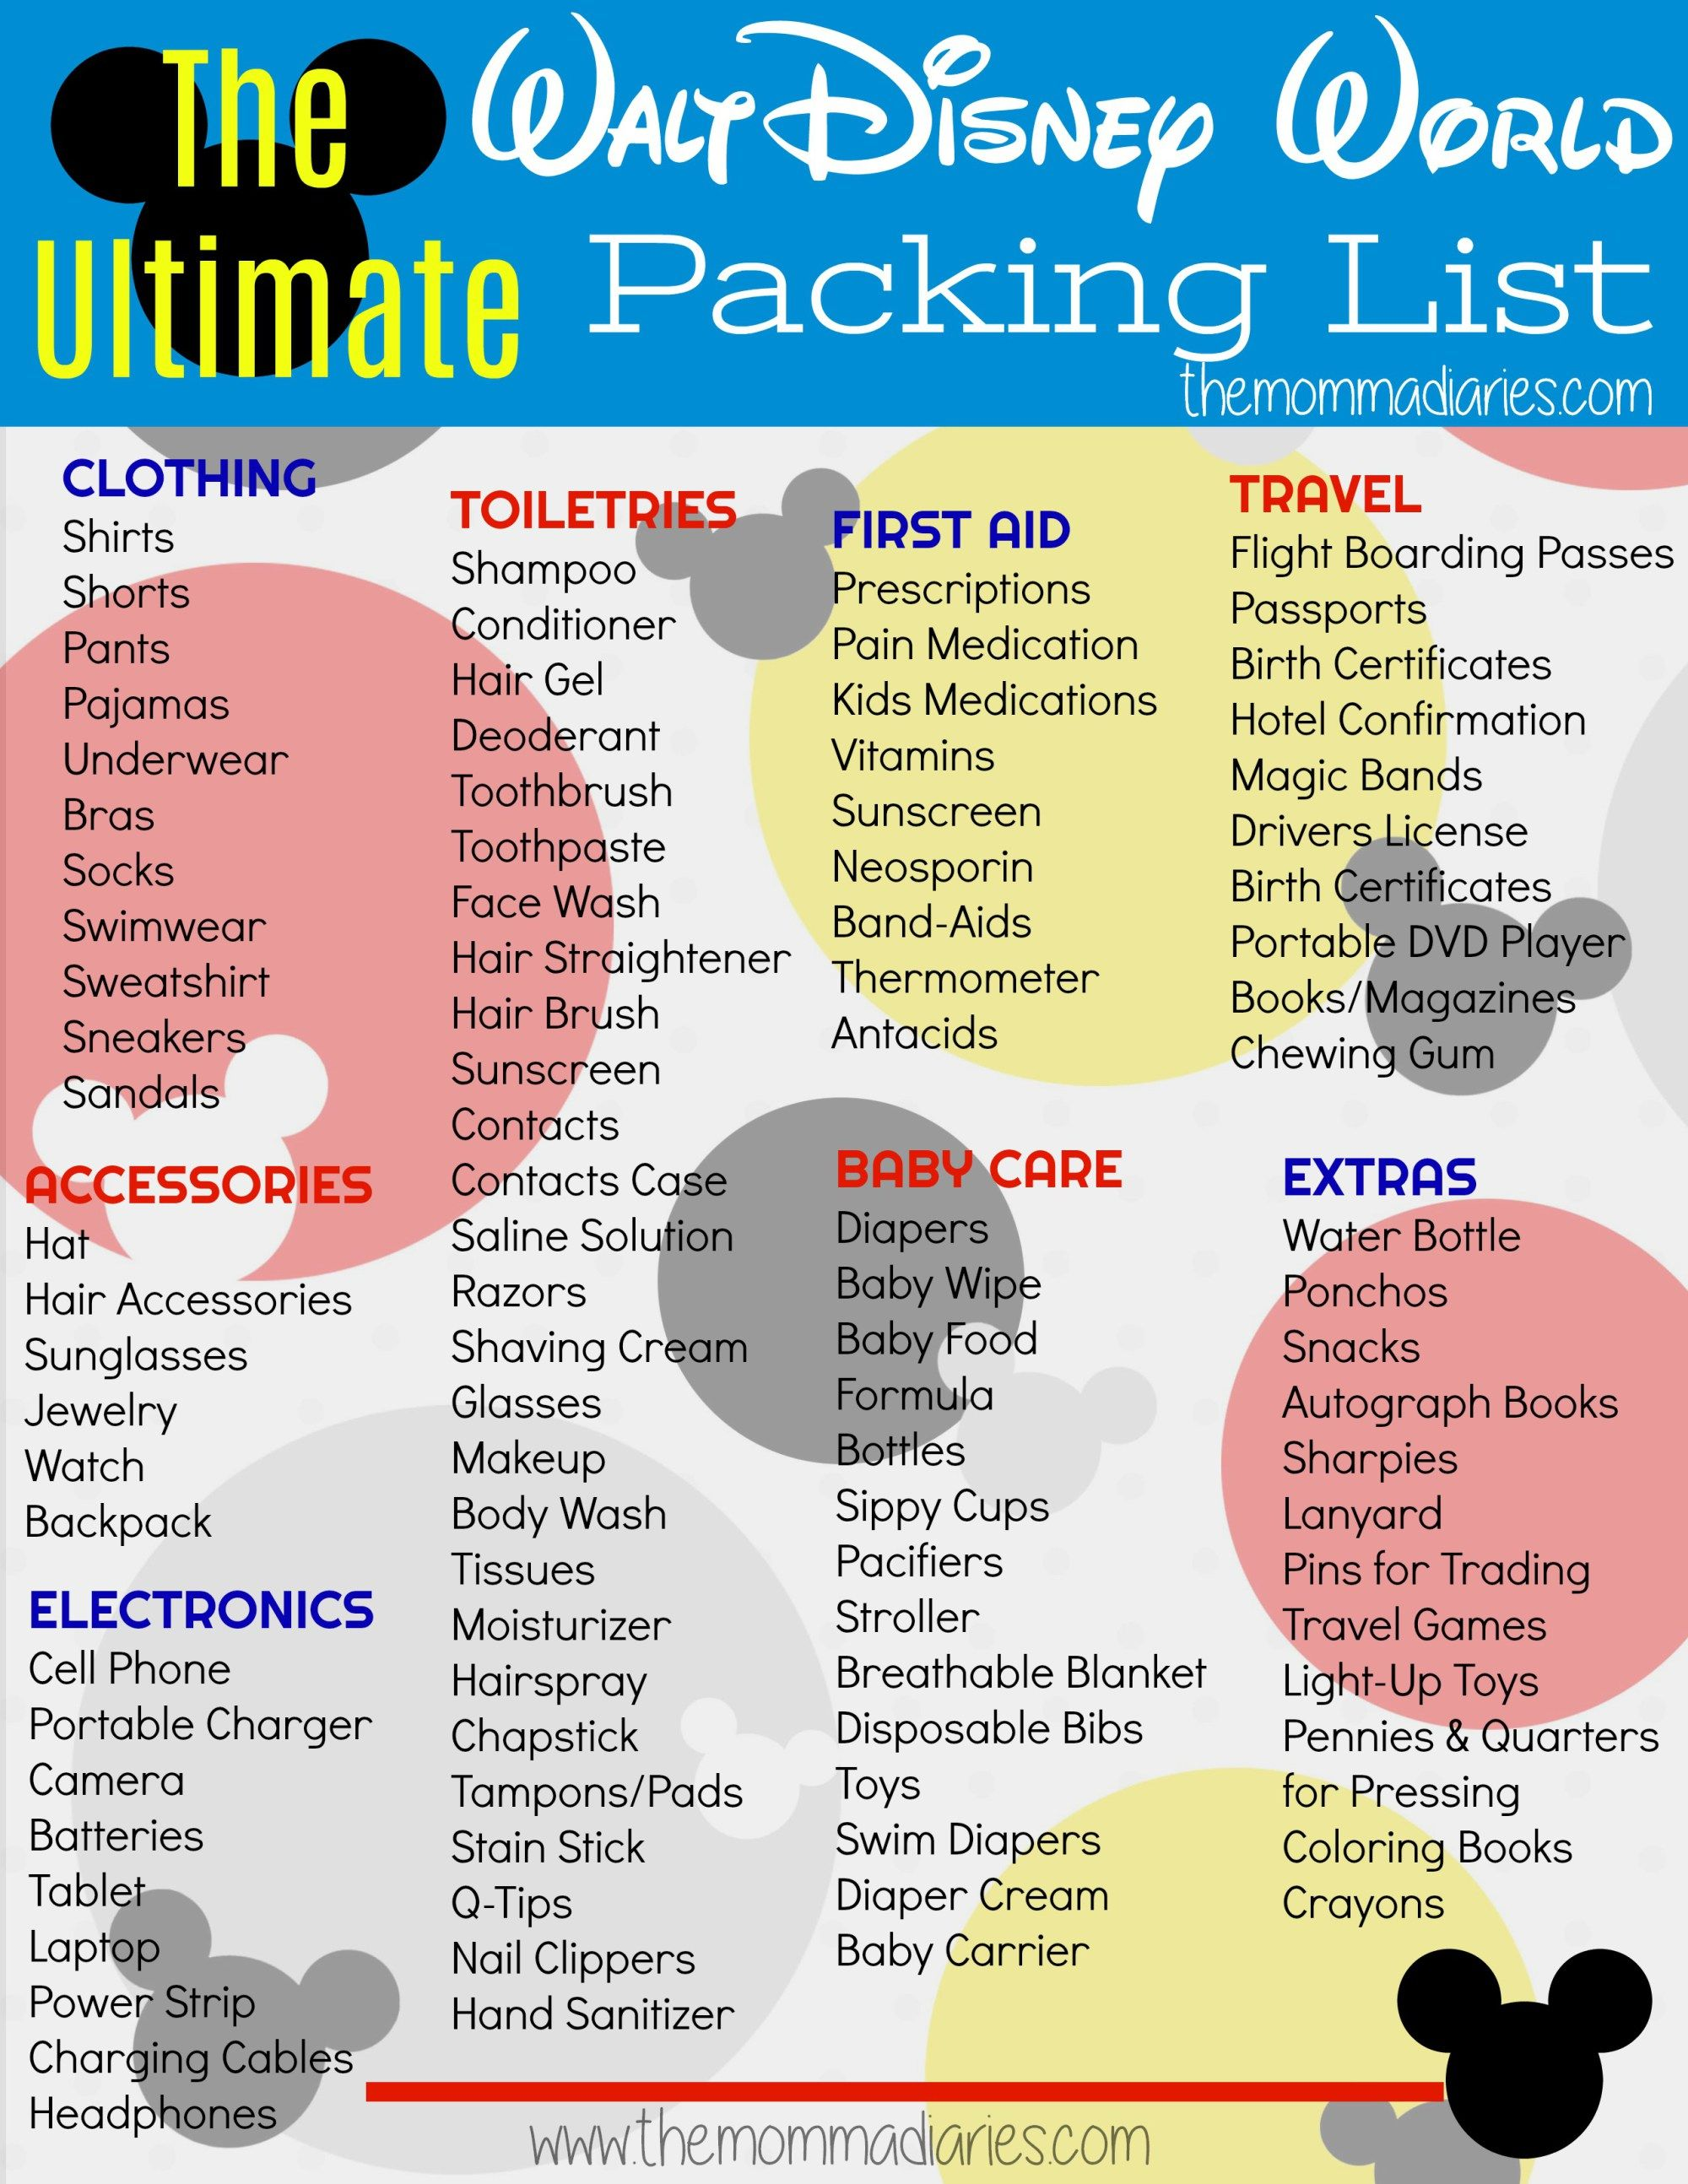 The Ultimate Disney Packing List Free Printable